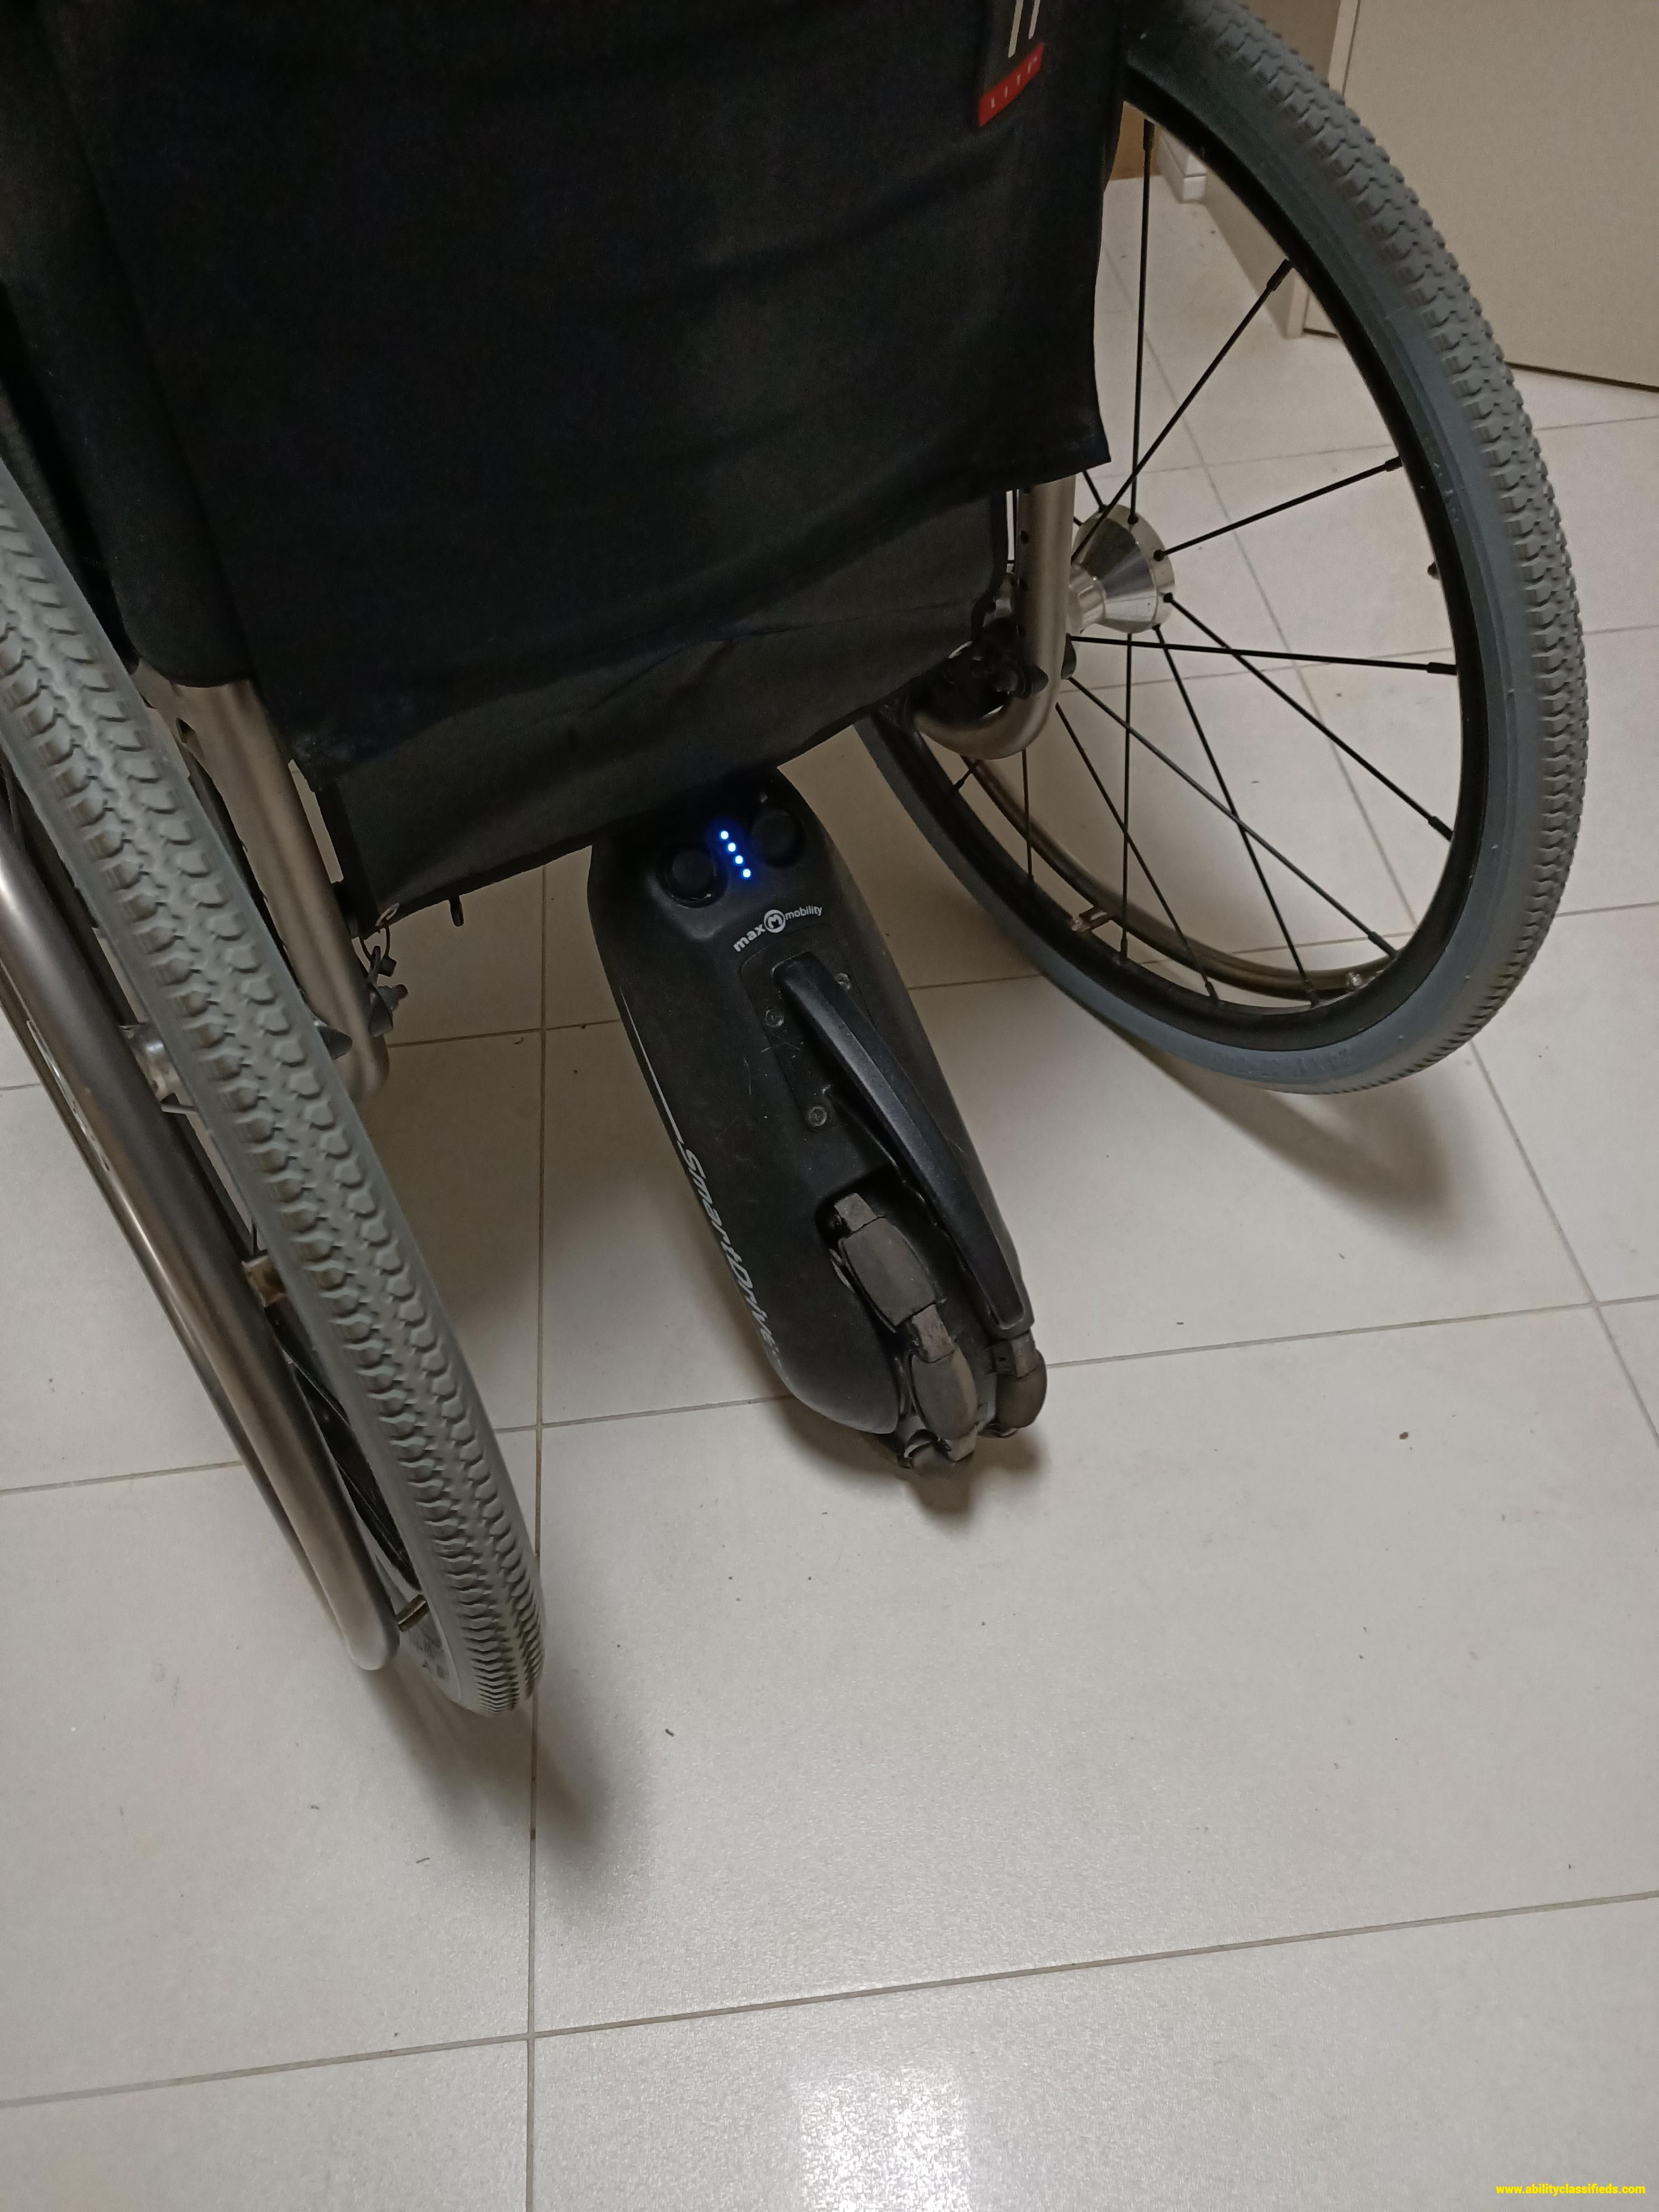 SmartDrive for wheelchair